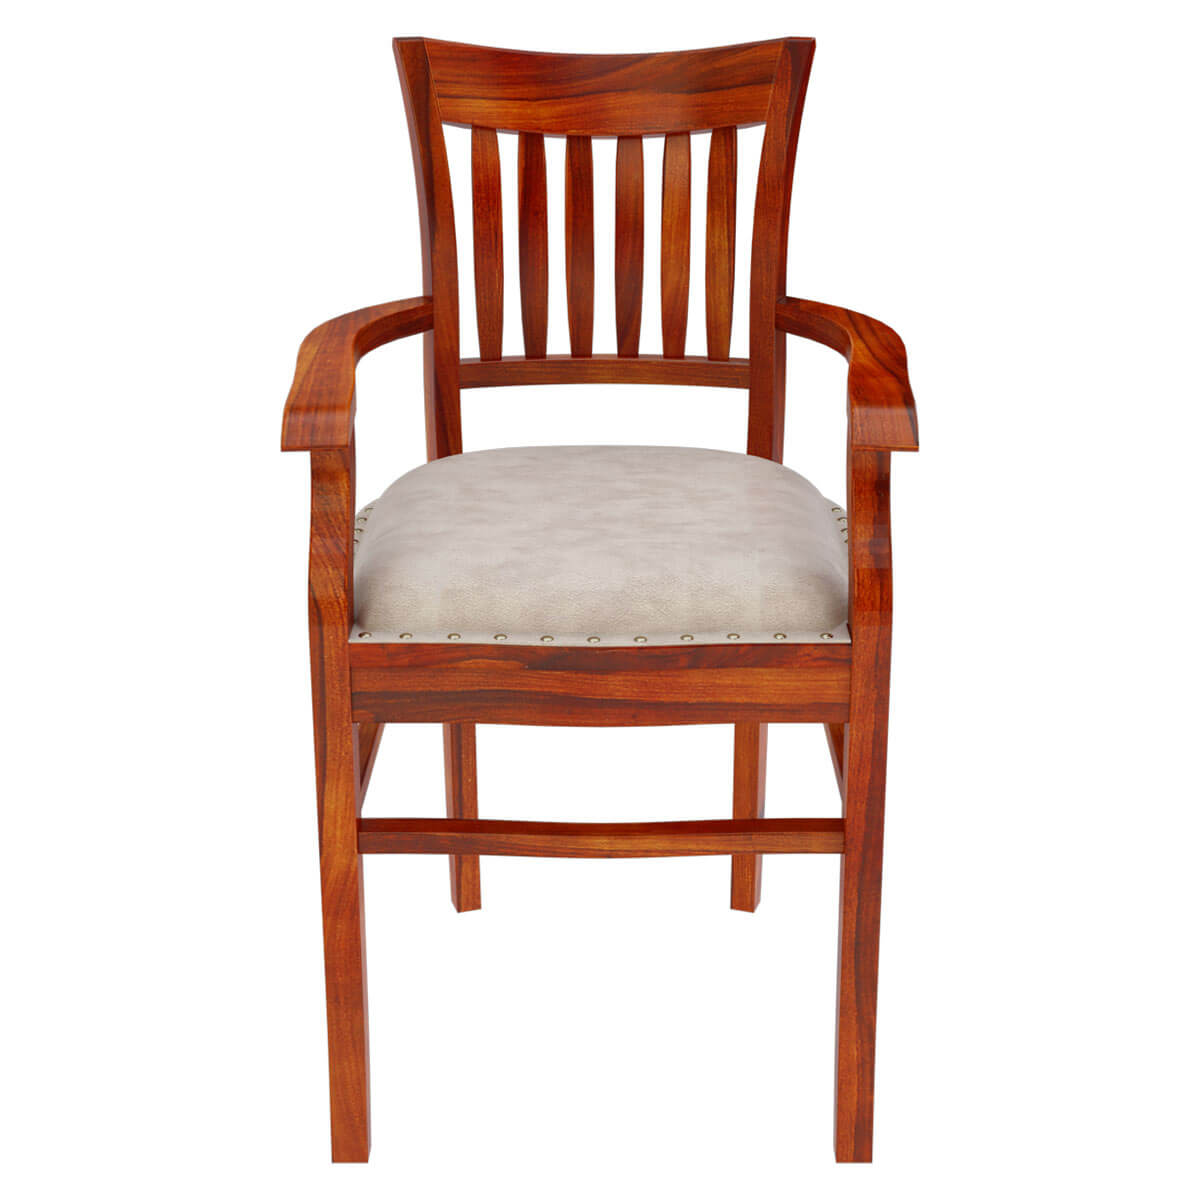 large dining chair pads plastic deck chairs australia chantilly chic handcrafted rosewood leather cushion